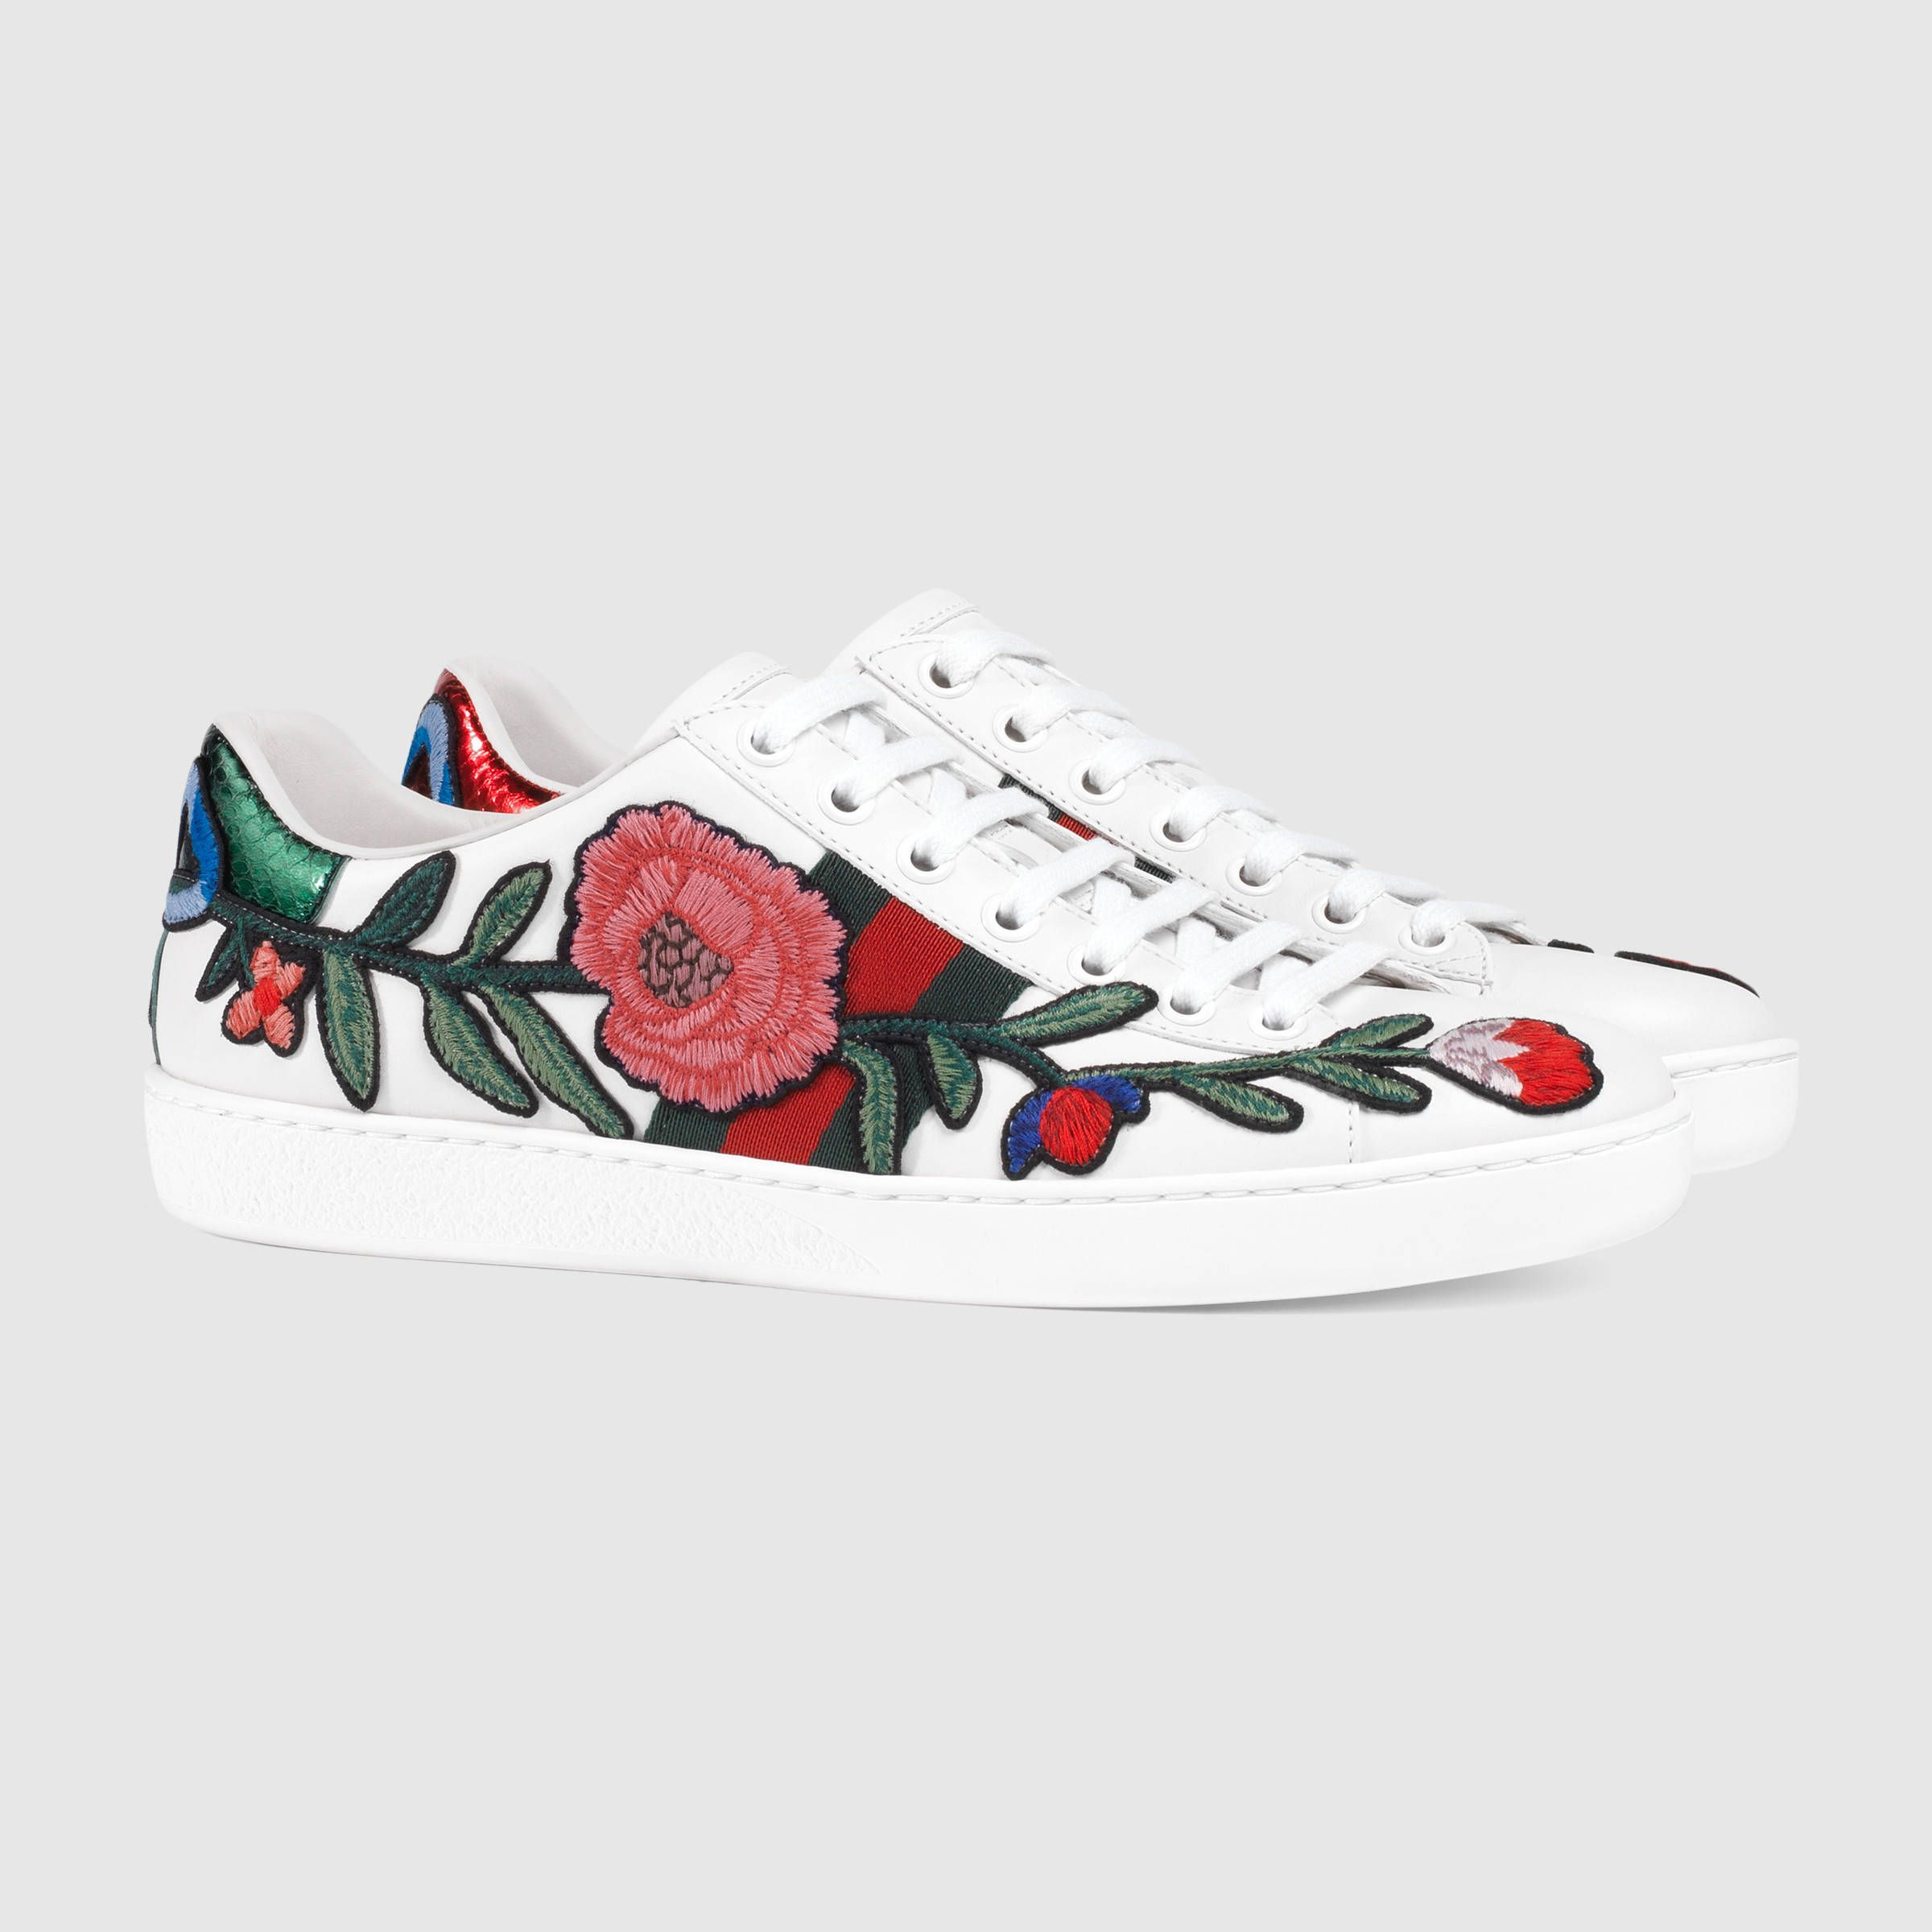 Gucci :: Embroidered sneakers. (Just buy some white leather effect sneakers  + cool